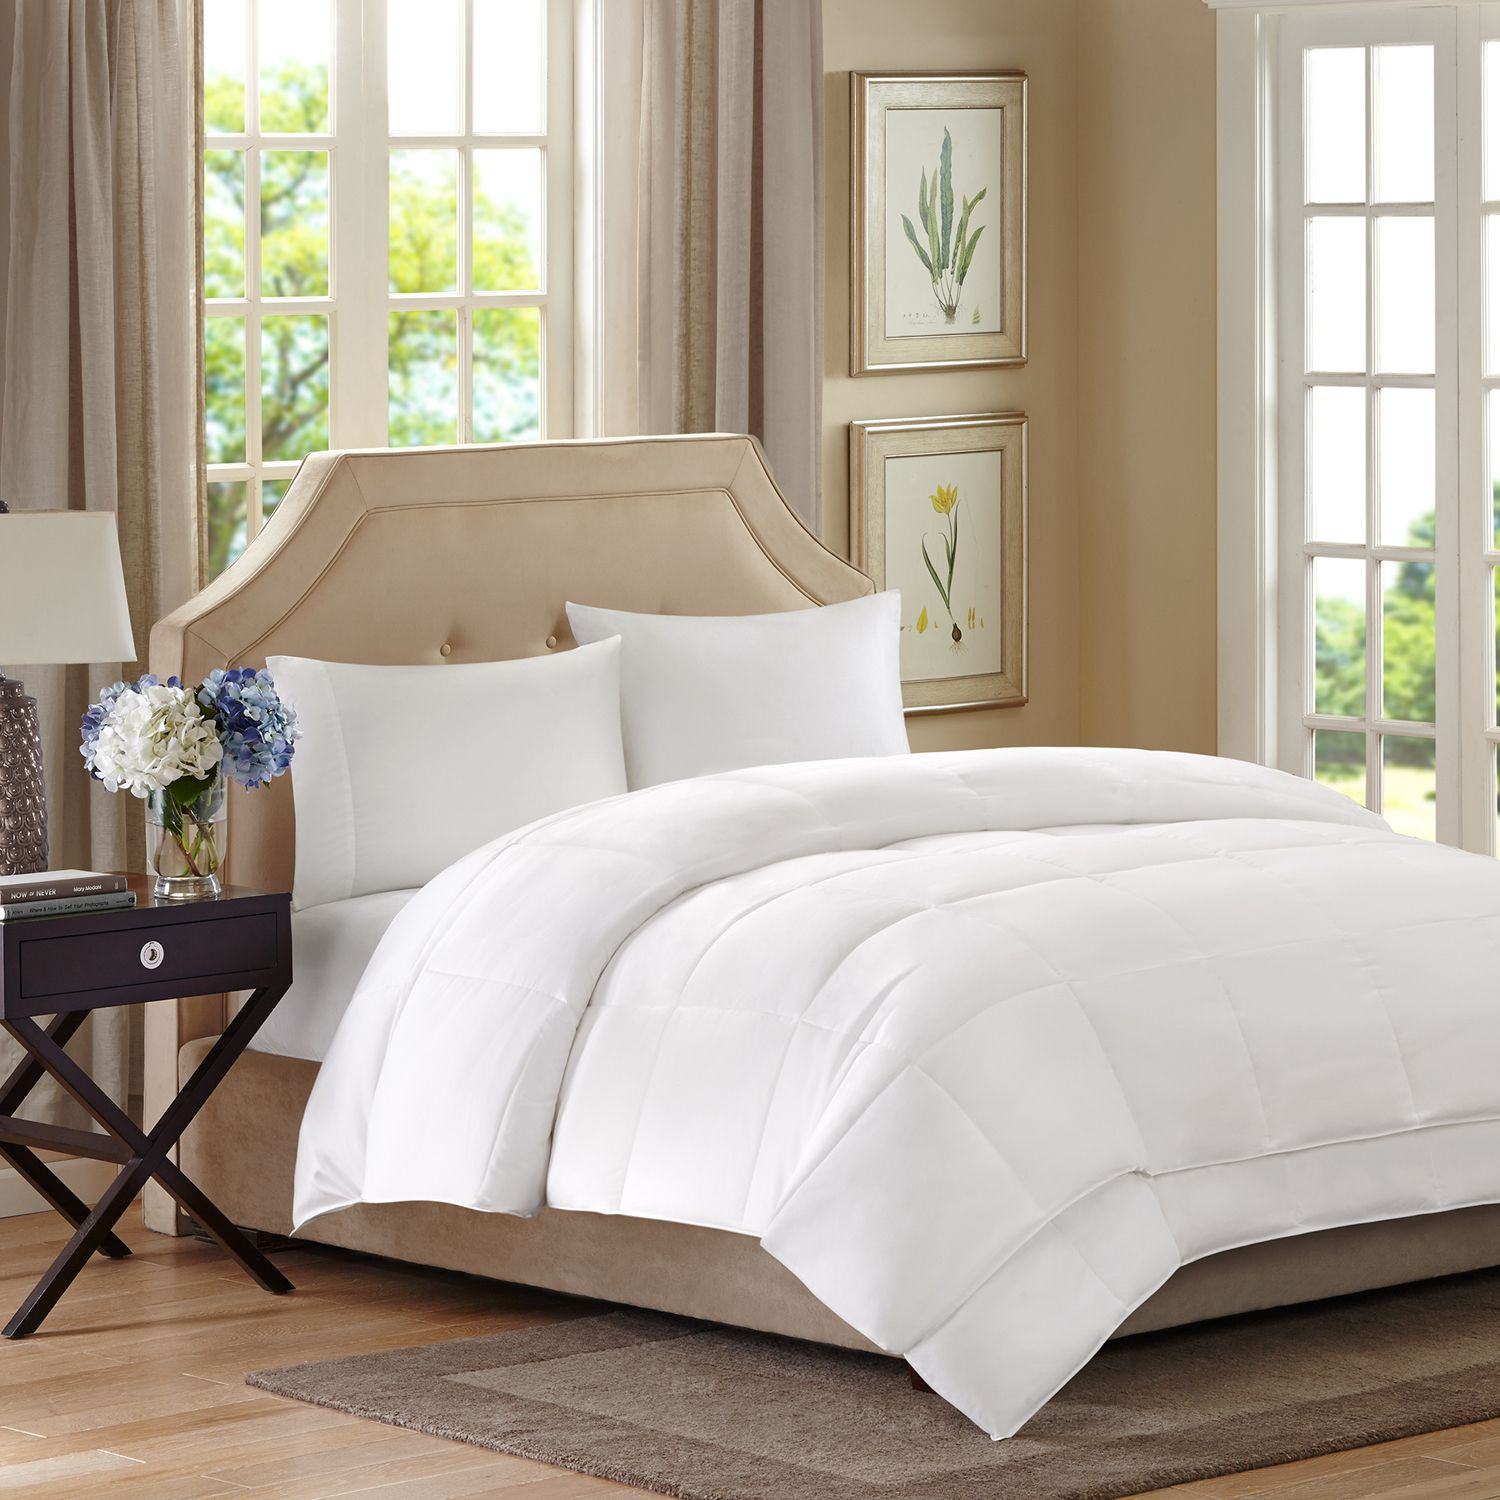 sleep philosophy benton 2layer down alternative comforter